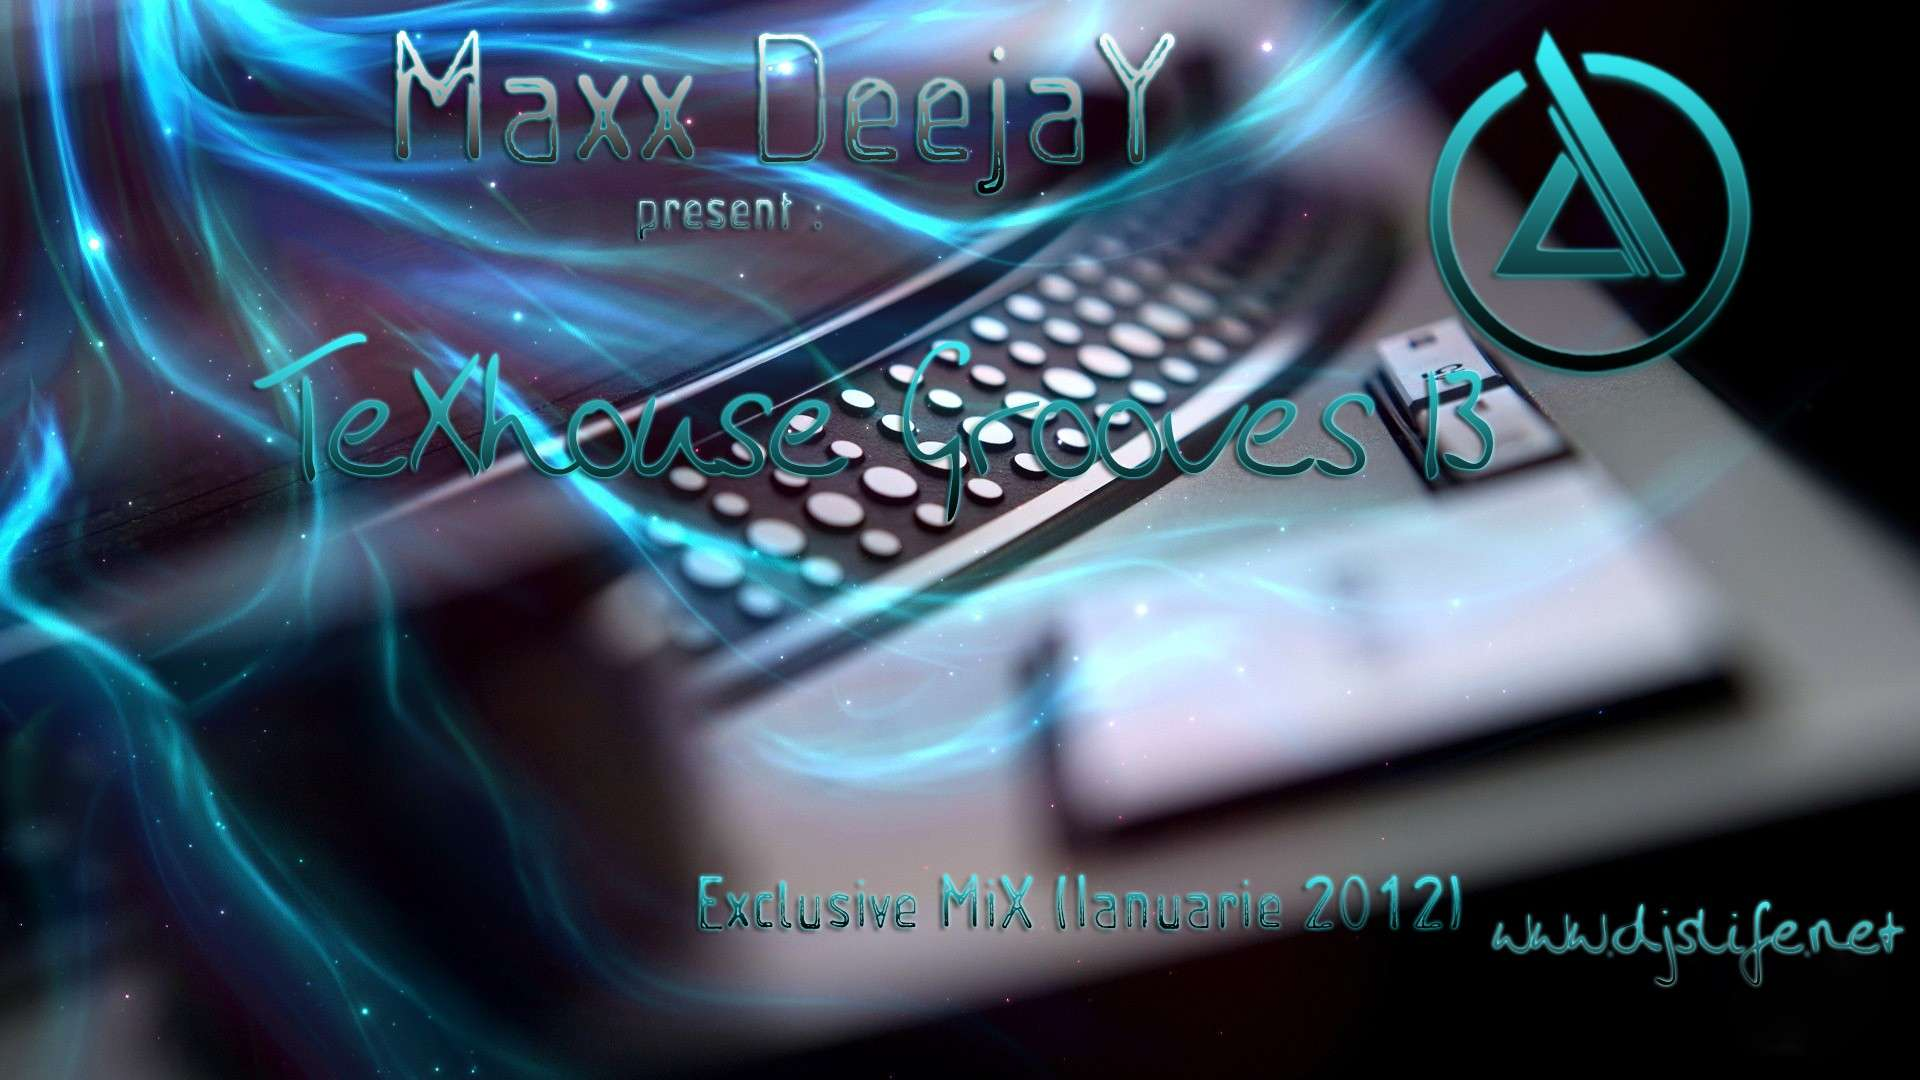 Maxx DeejaY - TeXhouse Grooves 13 Exclusive MiX (Ianuarie 2012)